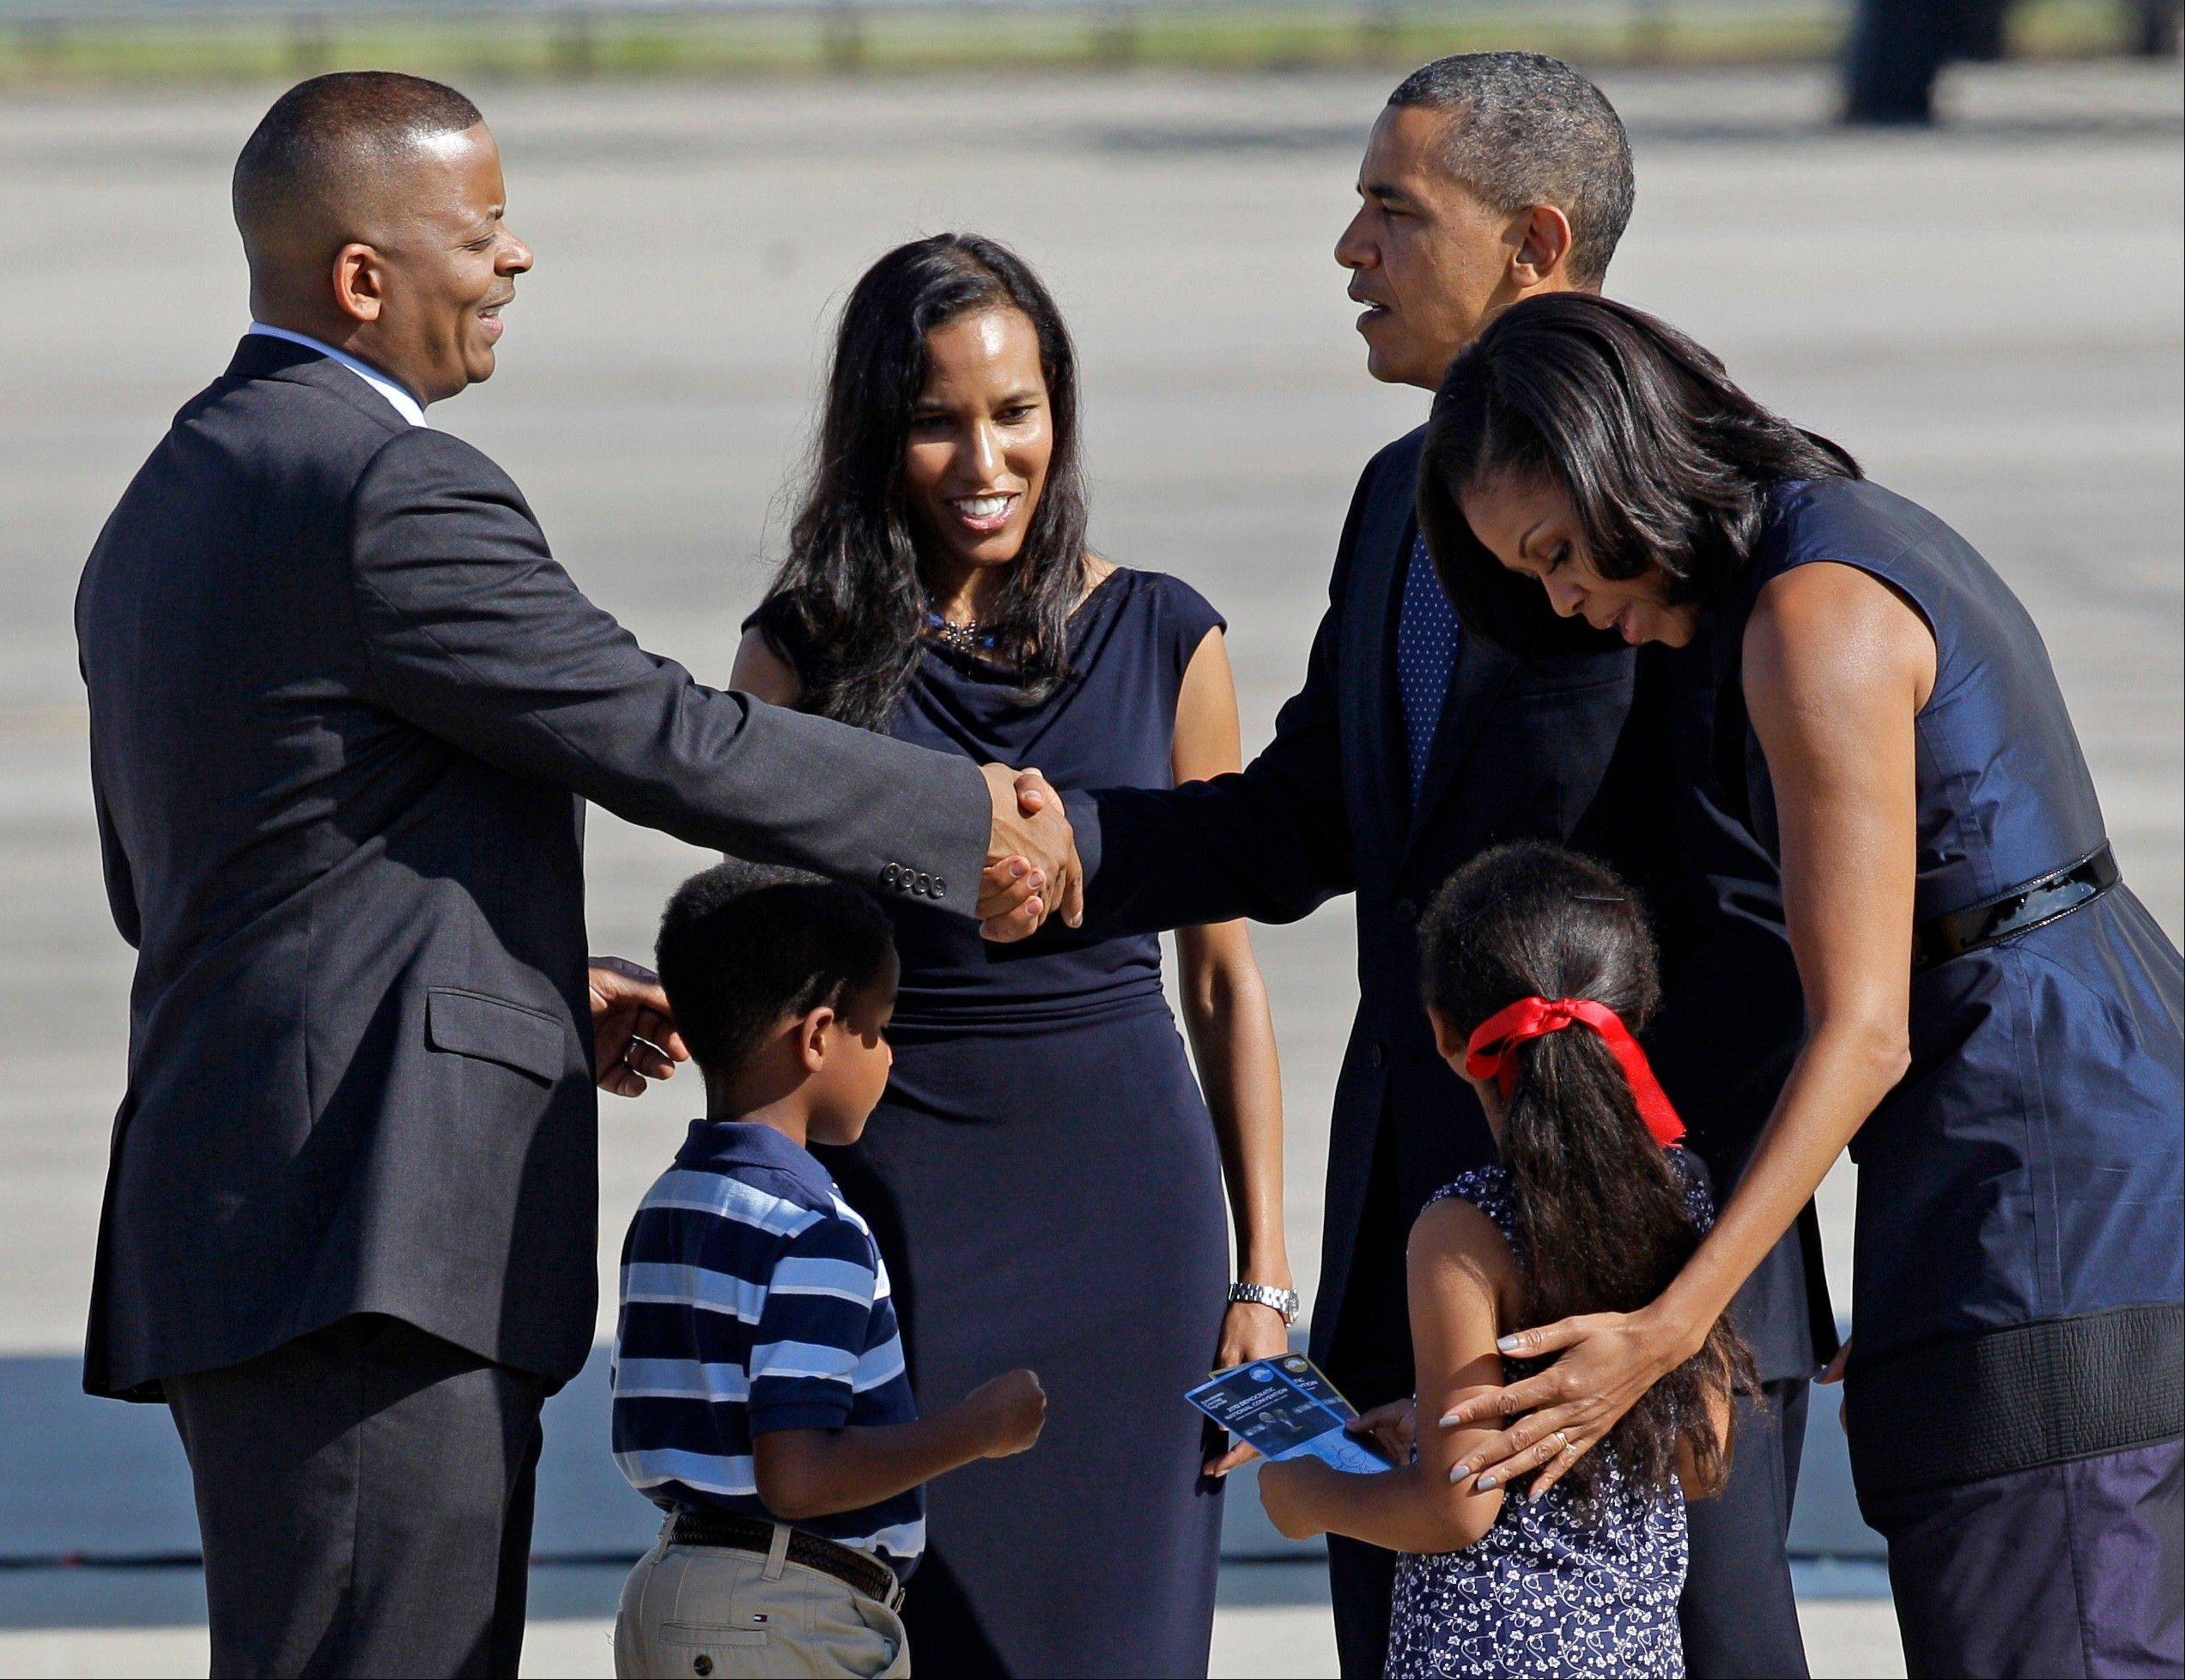 President Barack Obama shakes hands with Charlotte, N.C. Mayor Anthony Foxx, left, as first lady Michelle Obama, right, greets Foxx�s children Hillary, and Zachary, before leaving leave Charlotte, N.C., after the Democratic National Convention, Friday, Sept. 7, 2012. Foxx�s wife Samara Foxx is second from left.